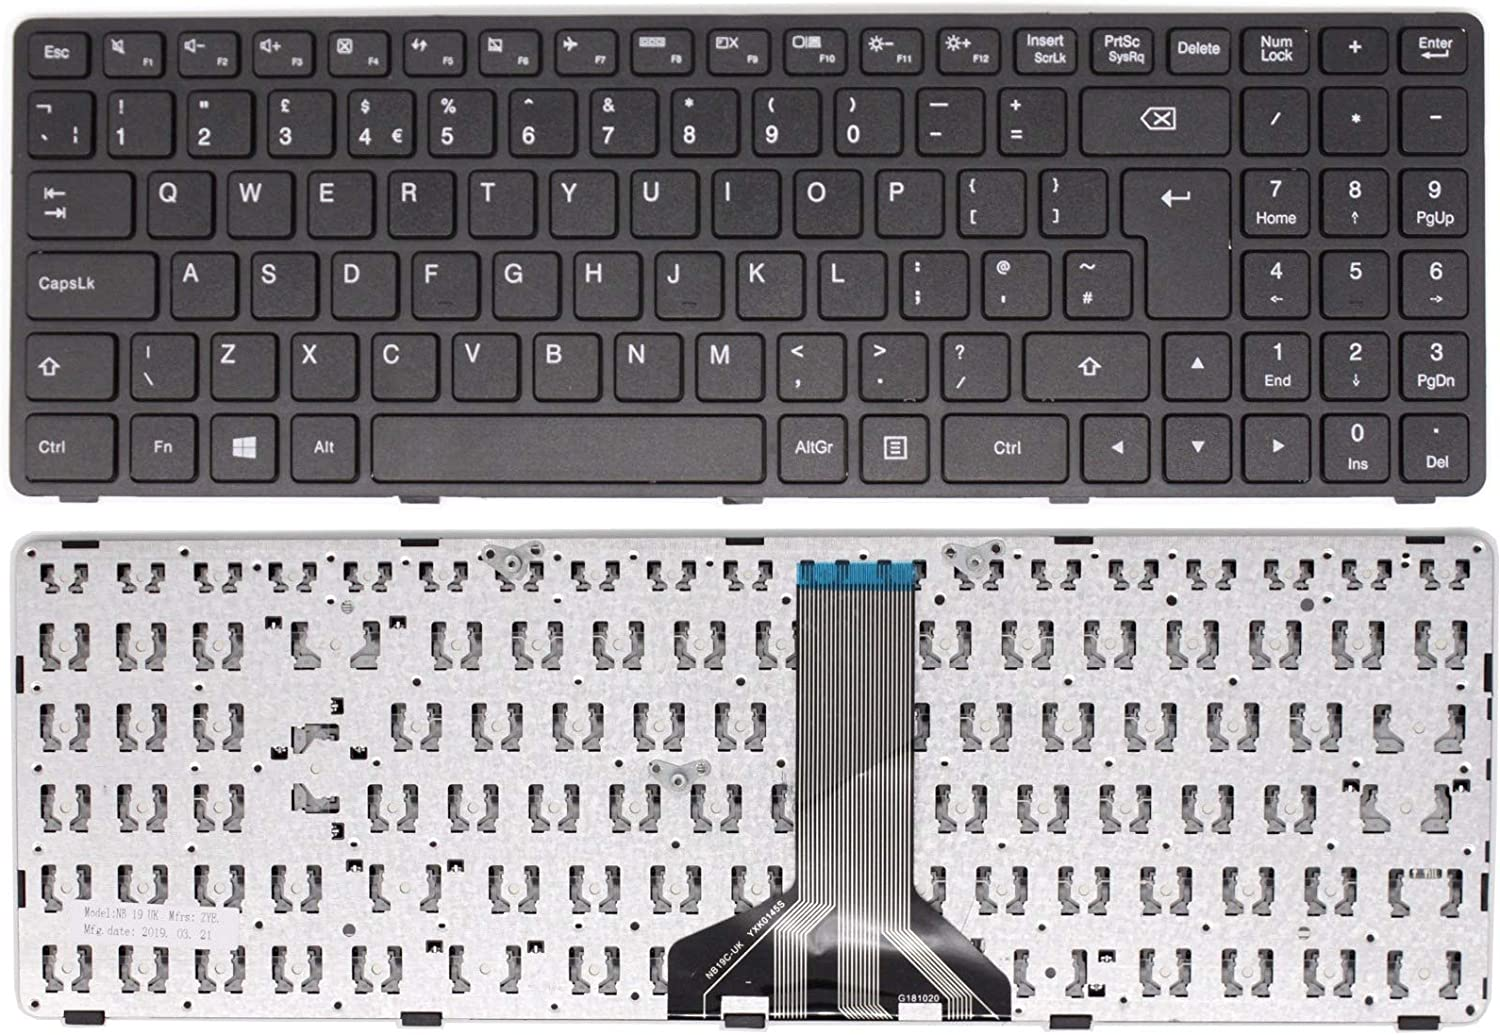 Wikiparts New Replacement UK Layout Keyboard for Lenovo Ideapad 100-15IBD Laptop Black English Keyboard with Middle Ribbon Connection